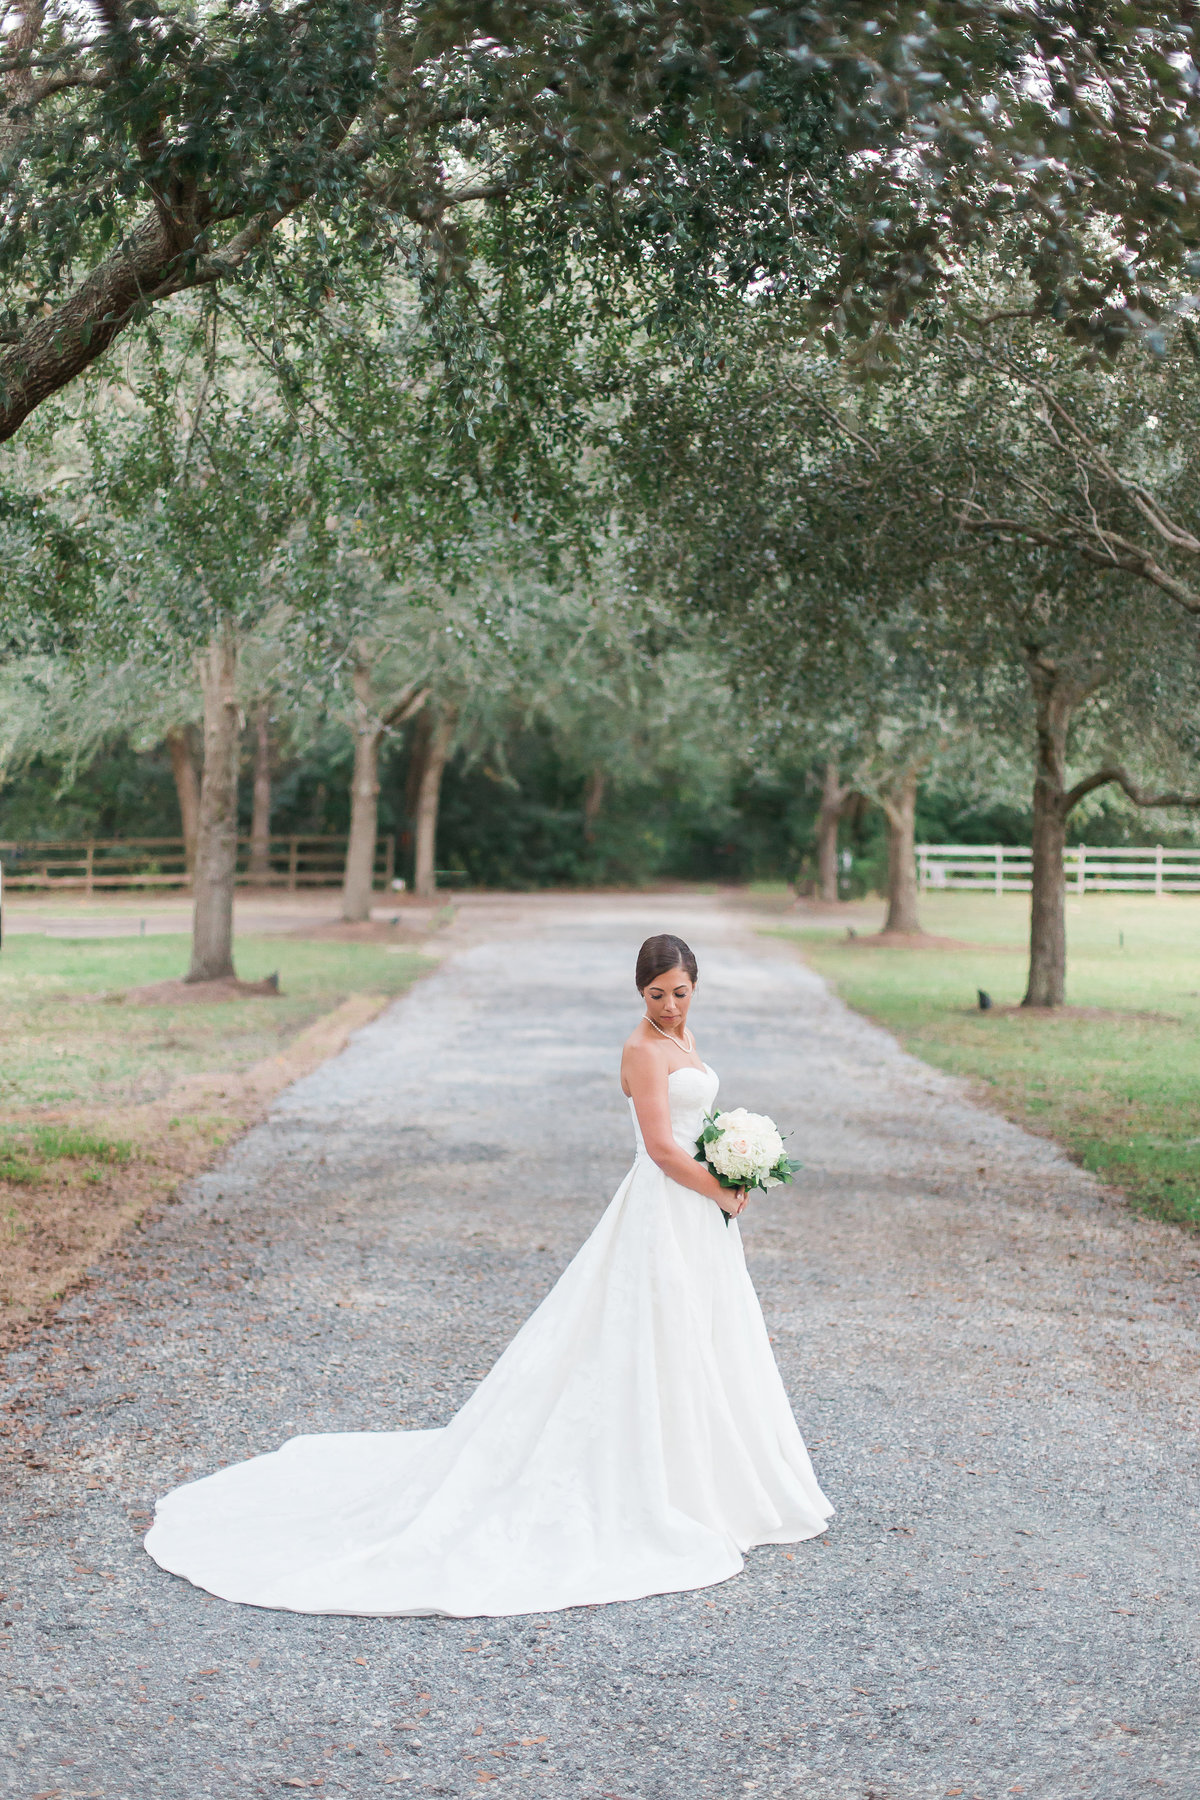 Charleston Weddings- Nancy Lempesis Photography - Wedding Phtography (44)